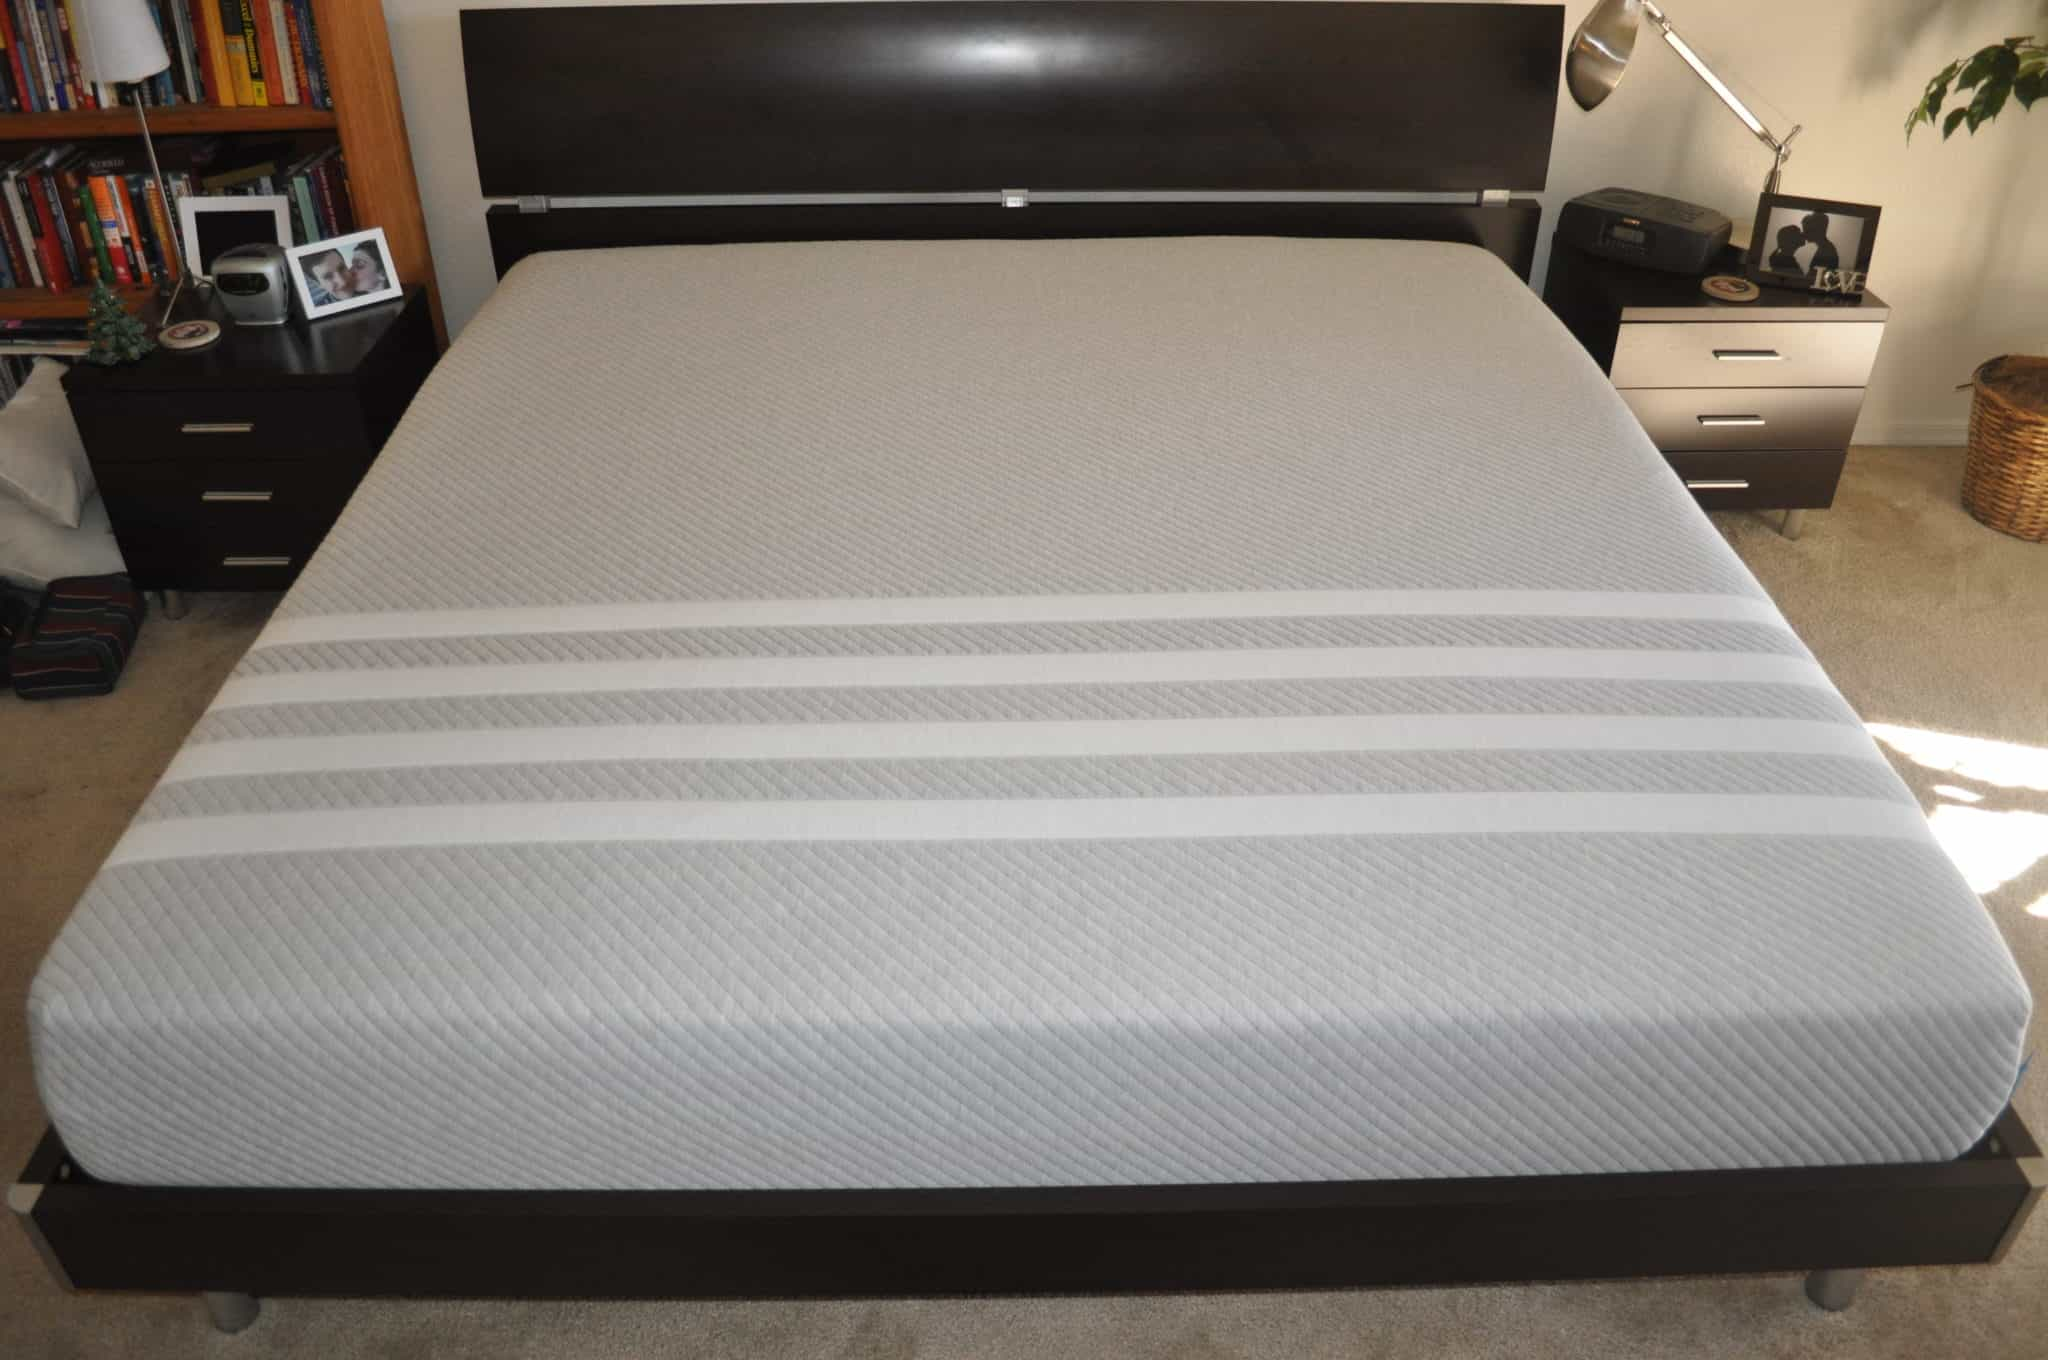 Leesa mattress review sleepopolis for Brooklyn bedding vs tuft and needle